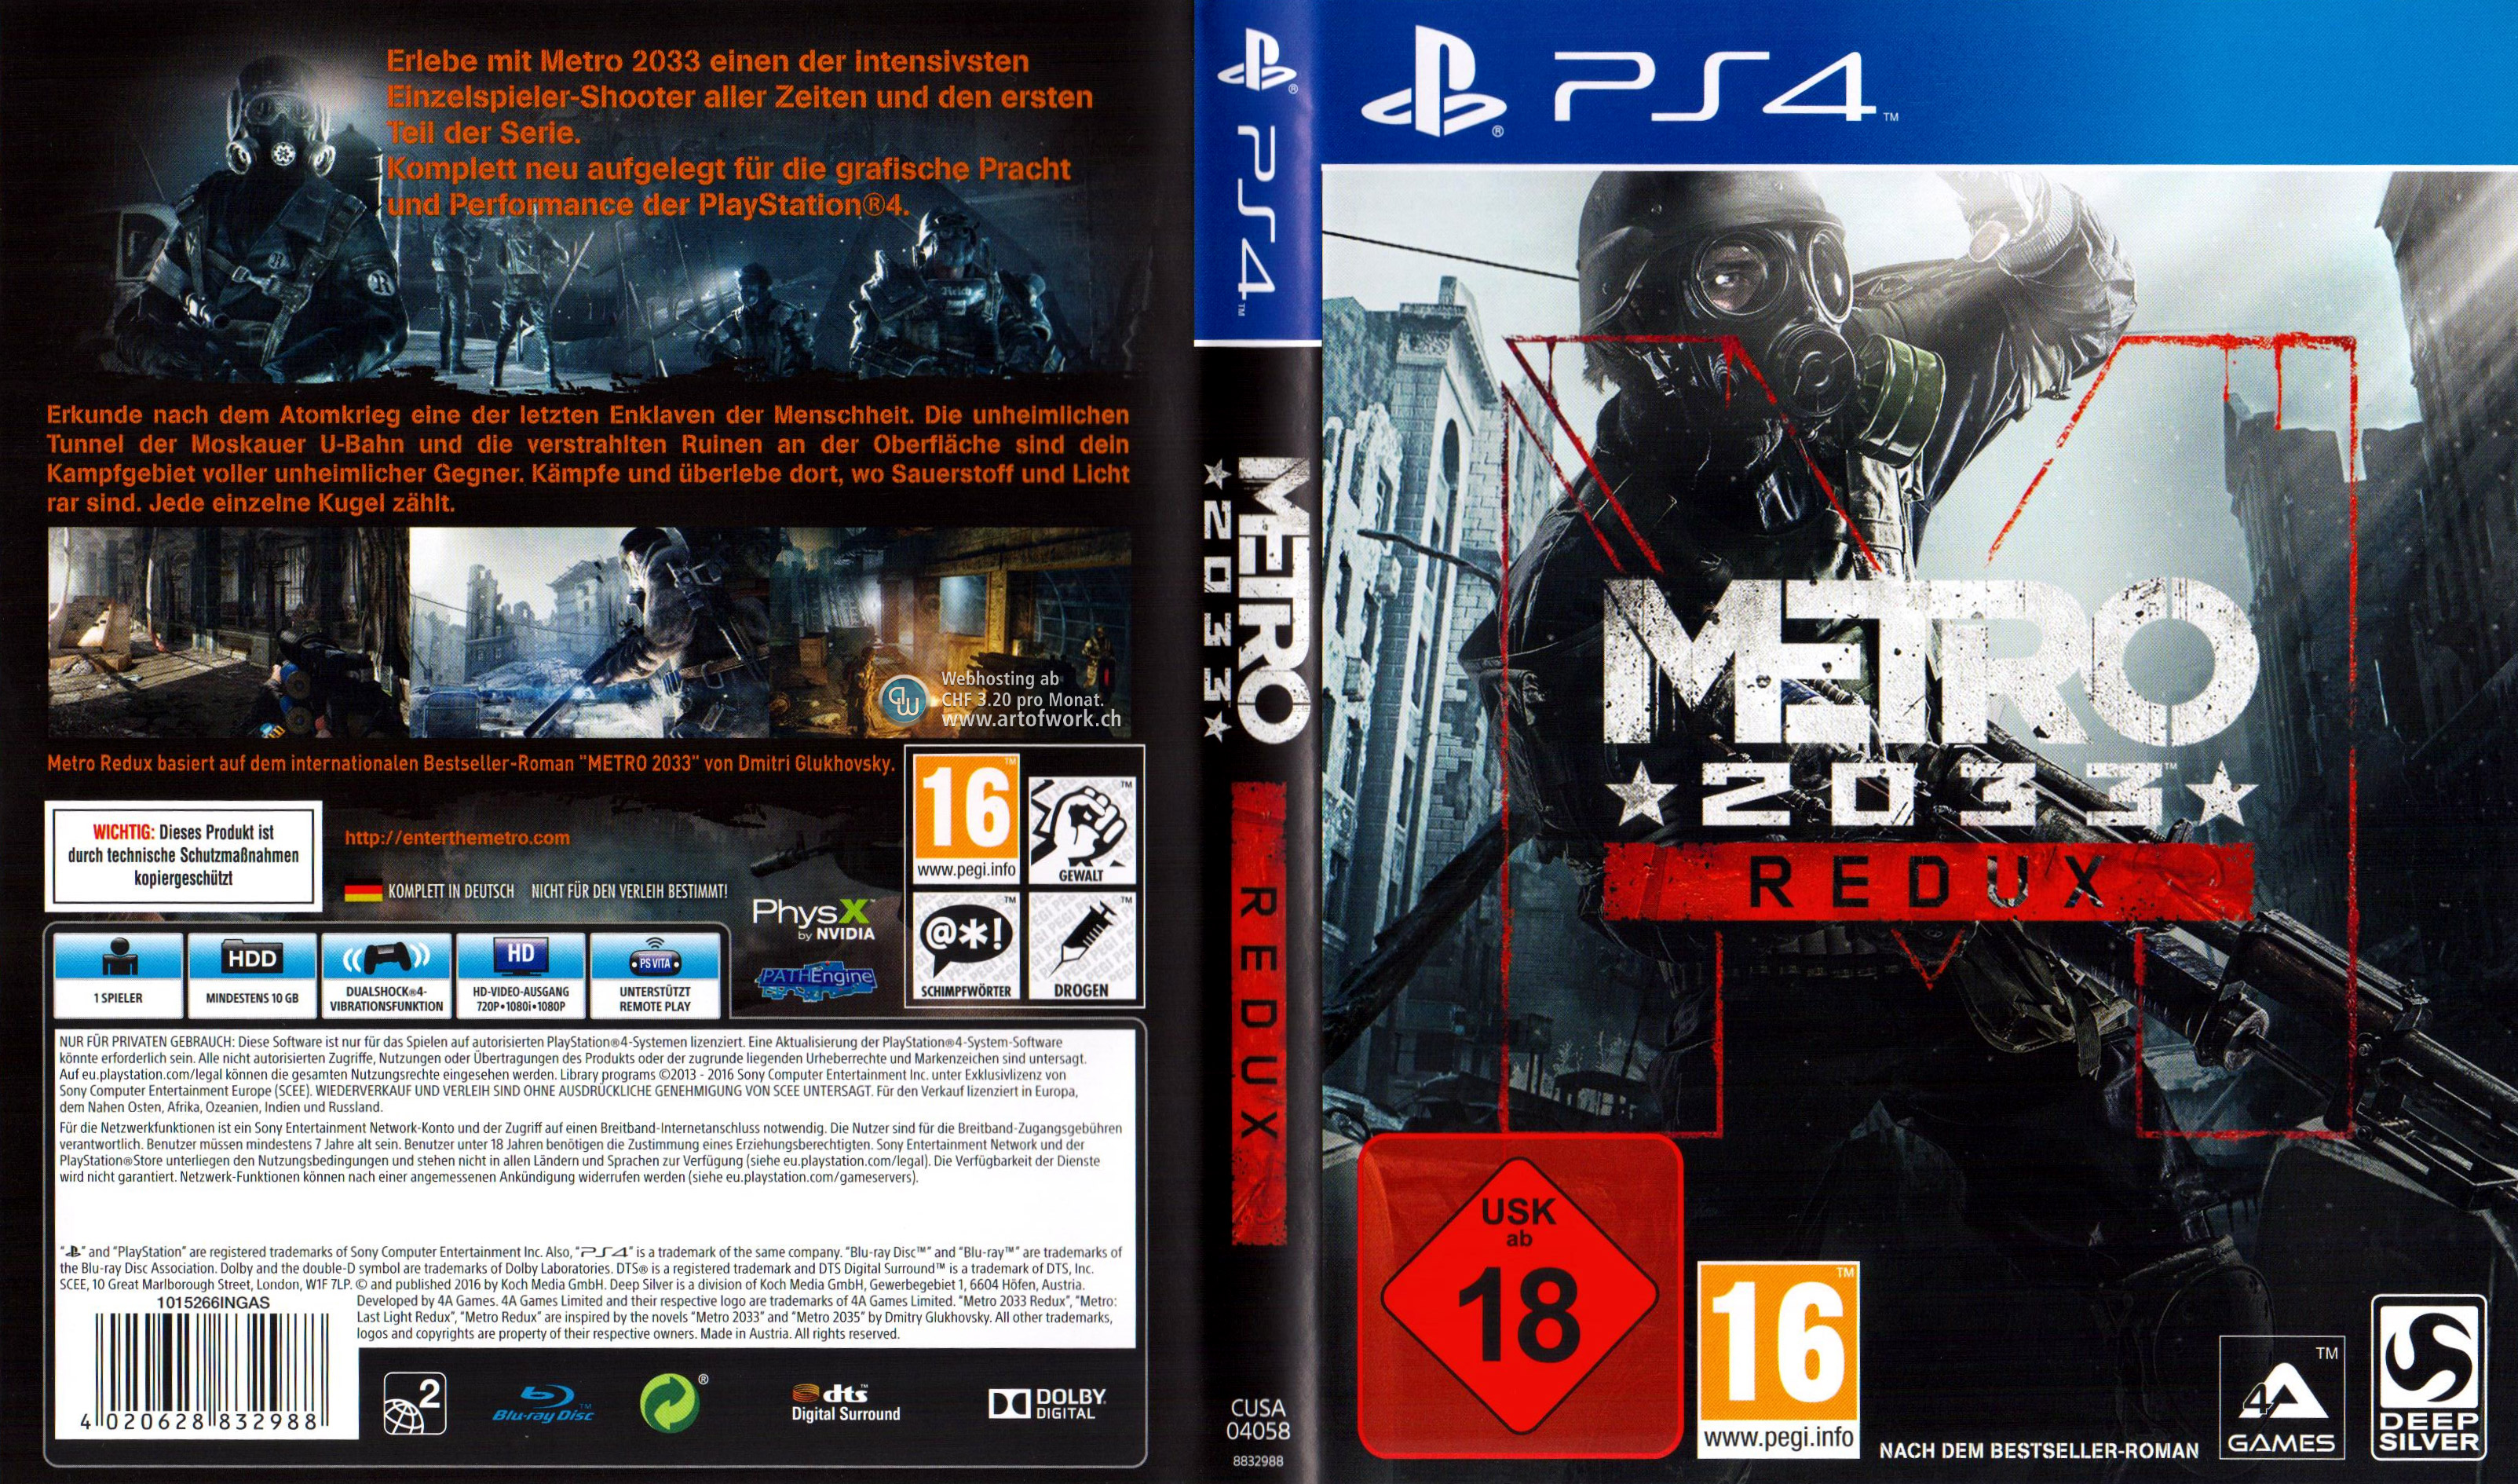 Playstation 4 Covers Metro 2033 The Crew The Division